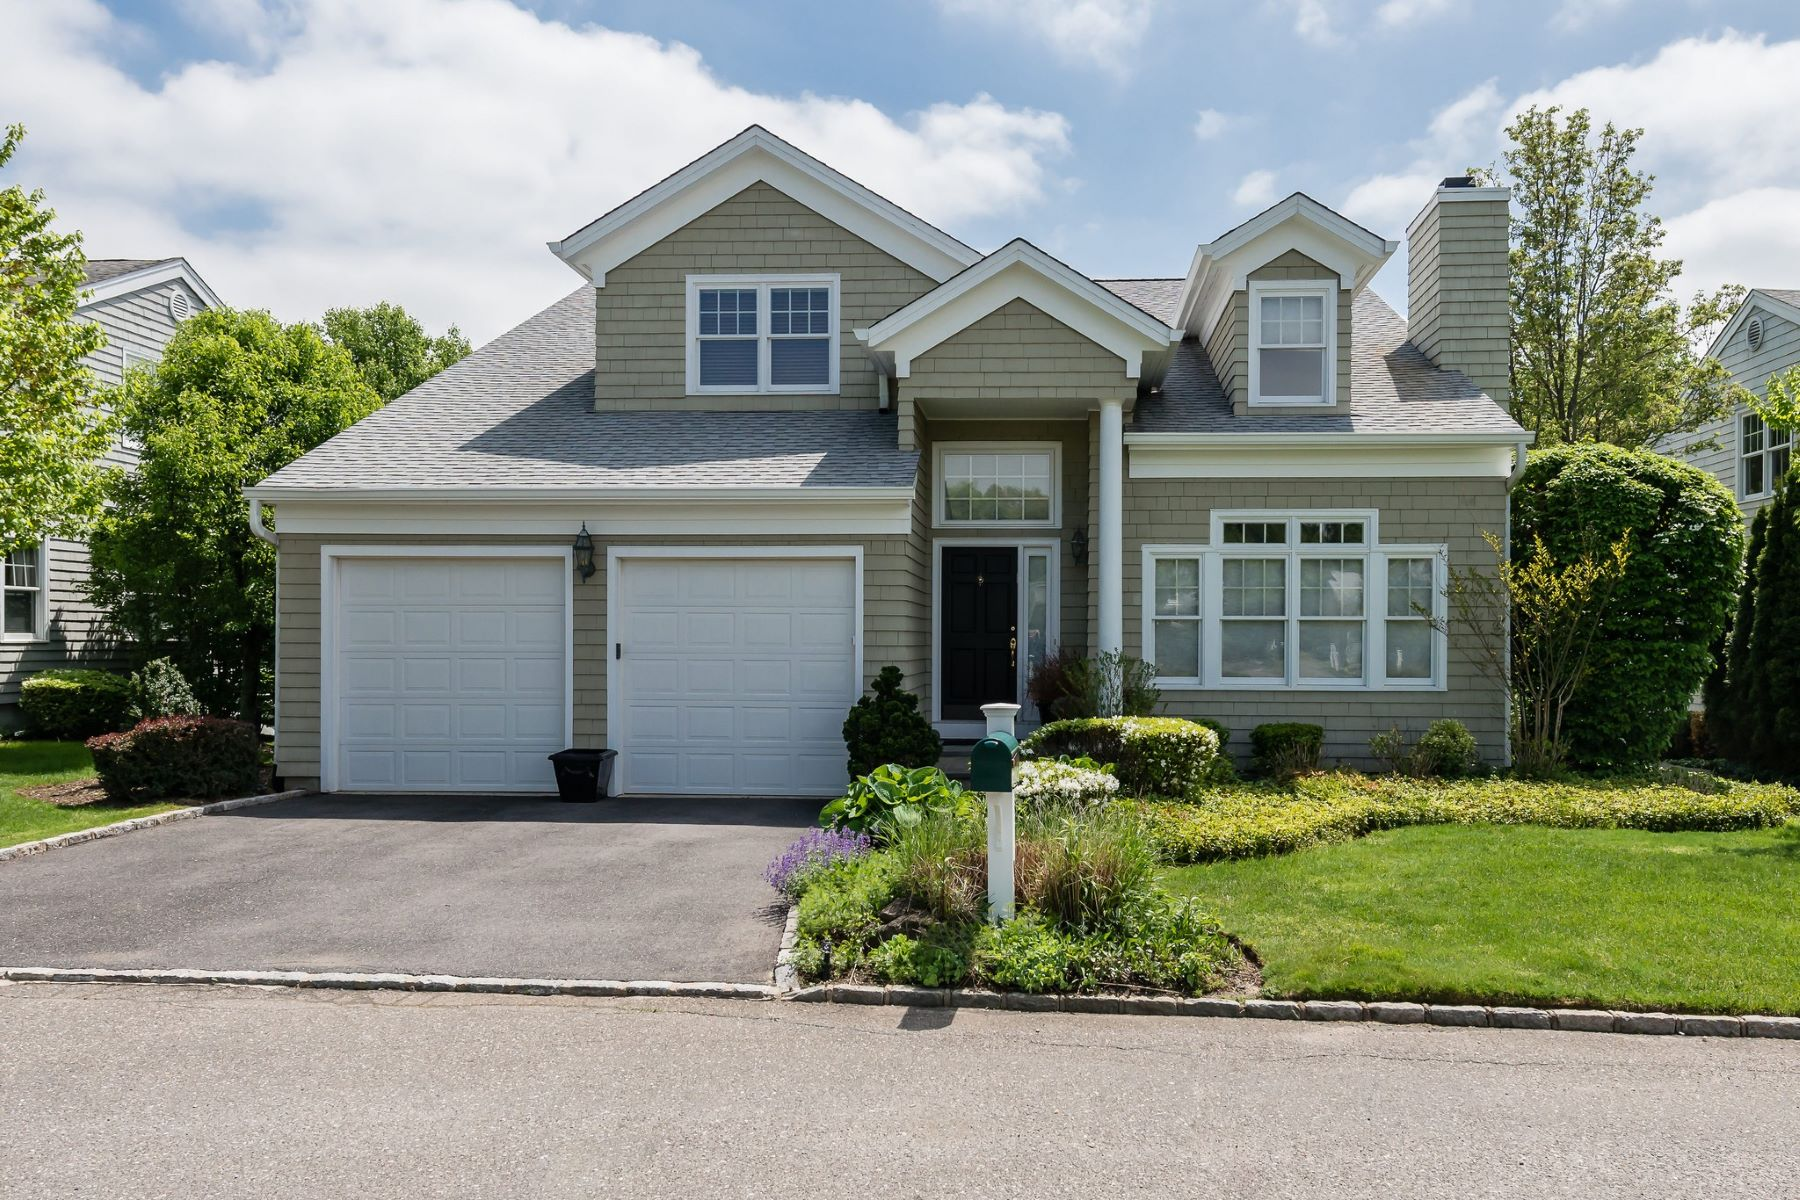 Single Family Homes for Sale at Oyster Bay 37 Fieldstone Lane Oyster Bay, New York 11771 United States